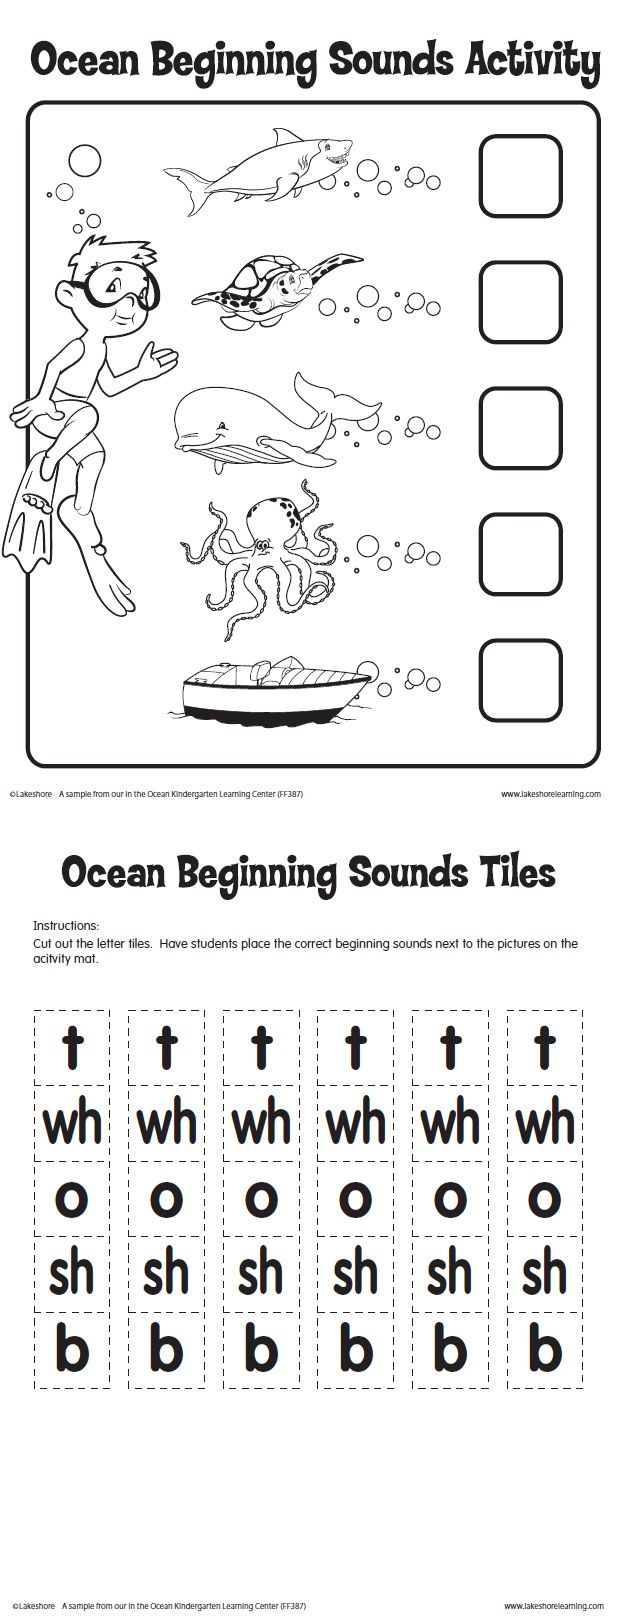 Worksheet Or Phonics Activities 1000 images about phonics on pinterest phonemic awareness ocean beginning sounds activity printable can help children start to understand the different of words this has deal phonics